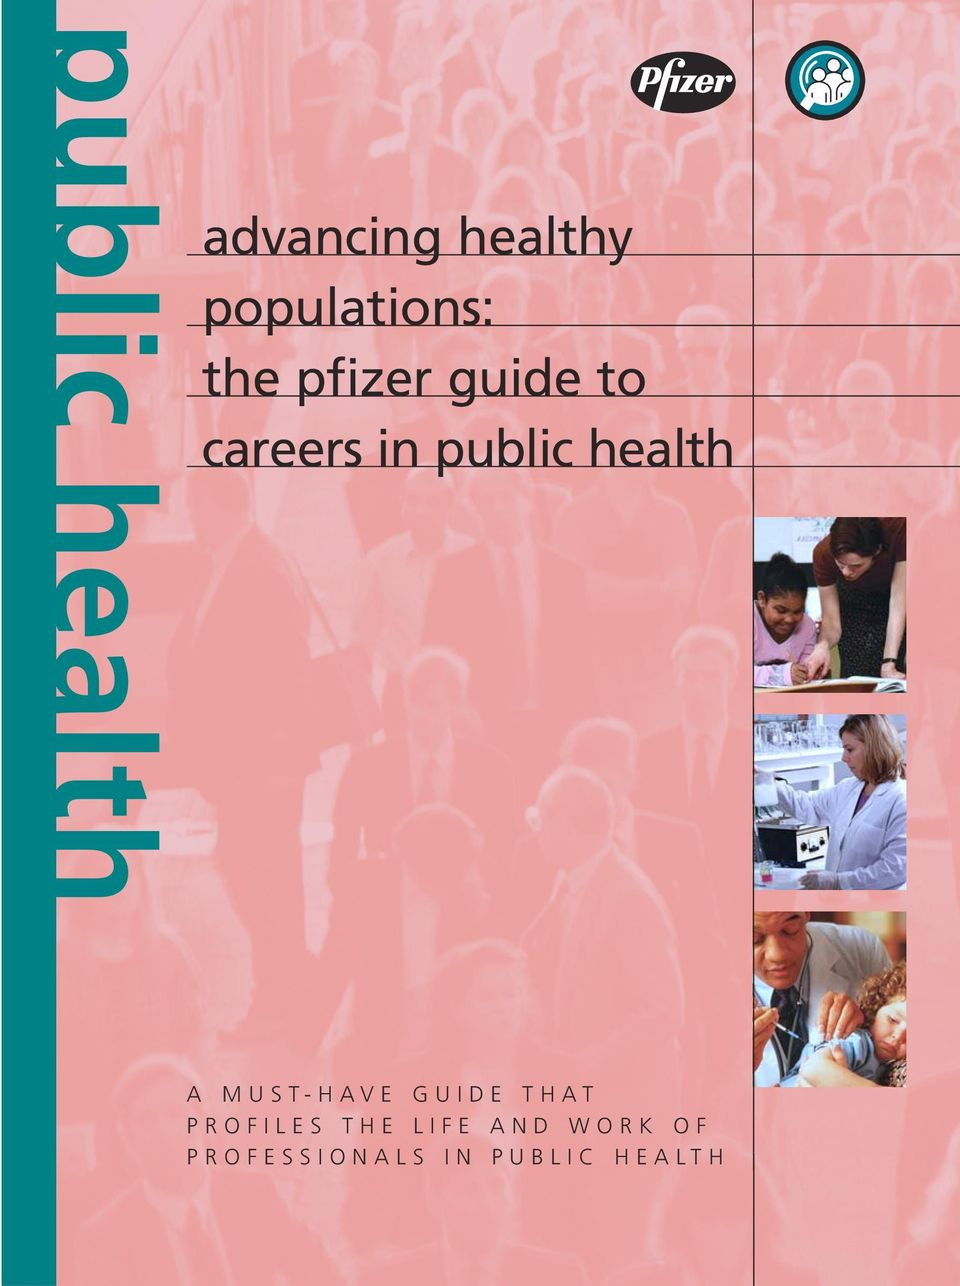 public health A MUST-HAVE GUIDE THAT